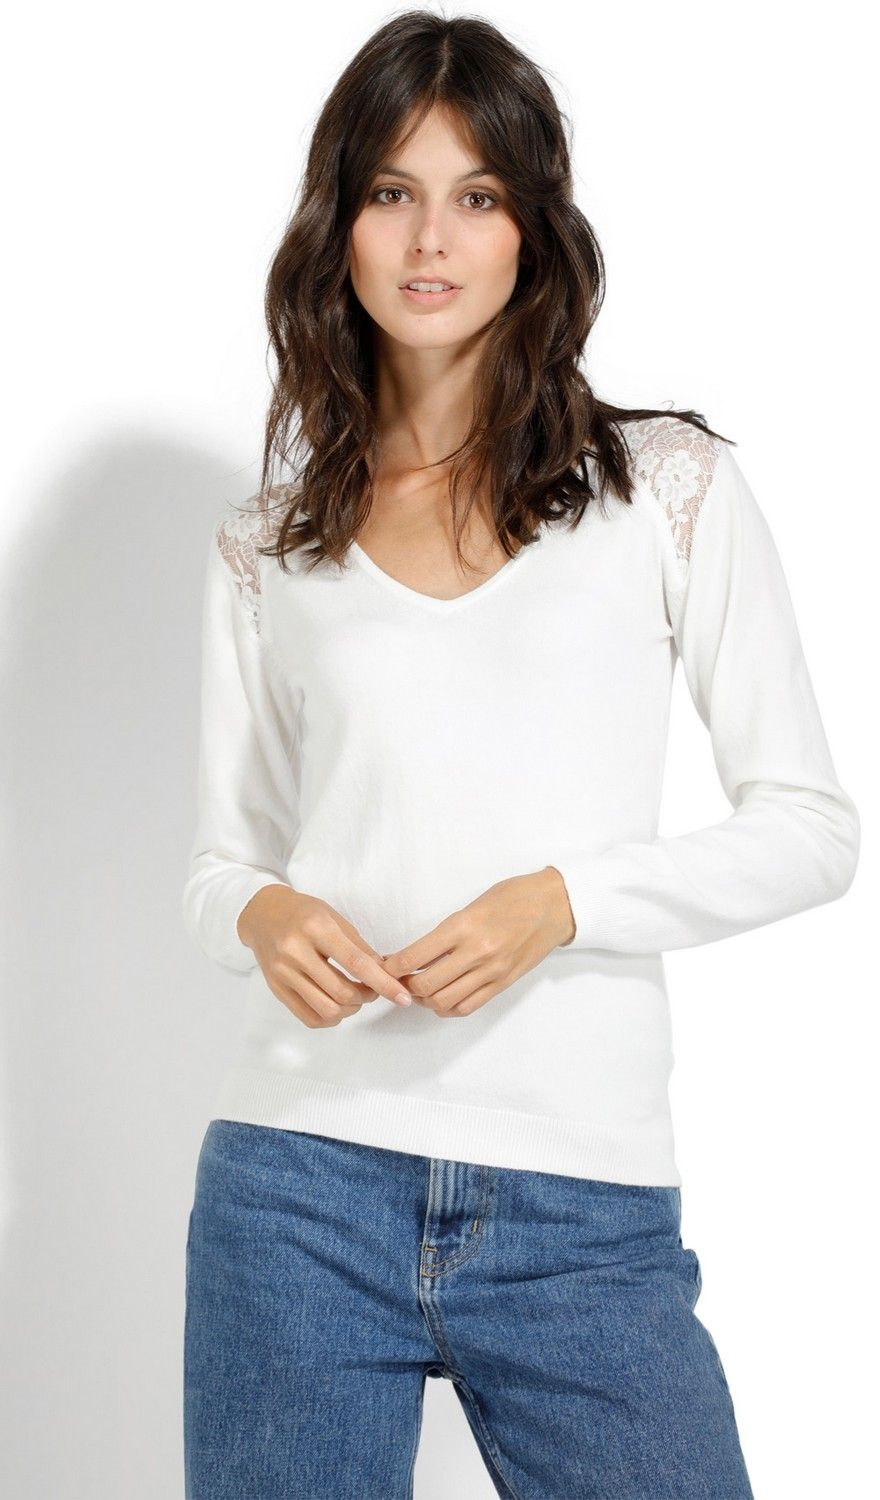 Assuili V-neck Long Sleeve Sweater with Lace in Ecru